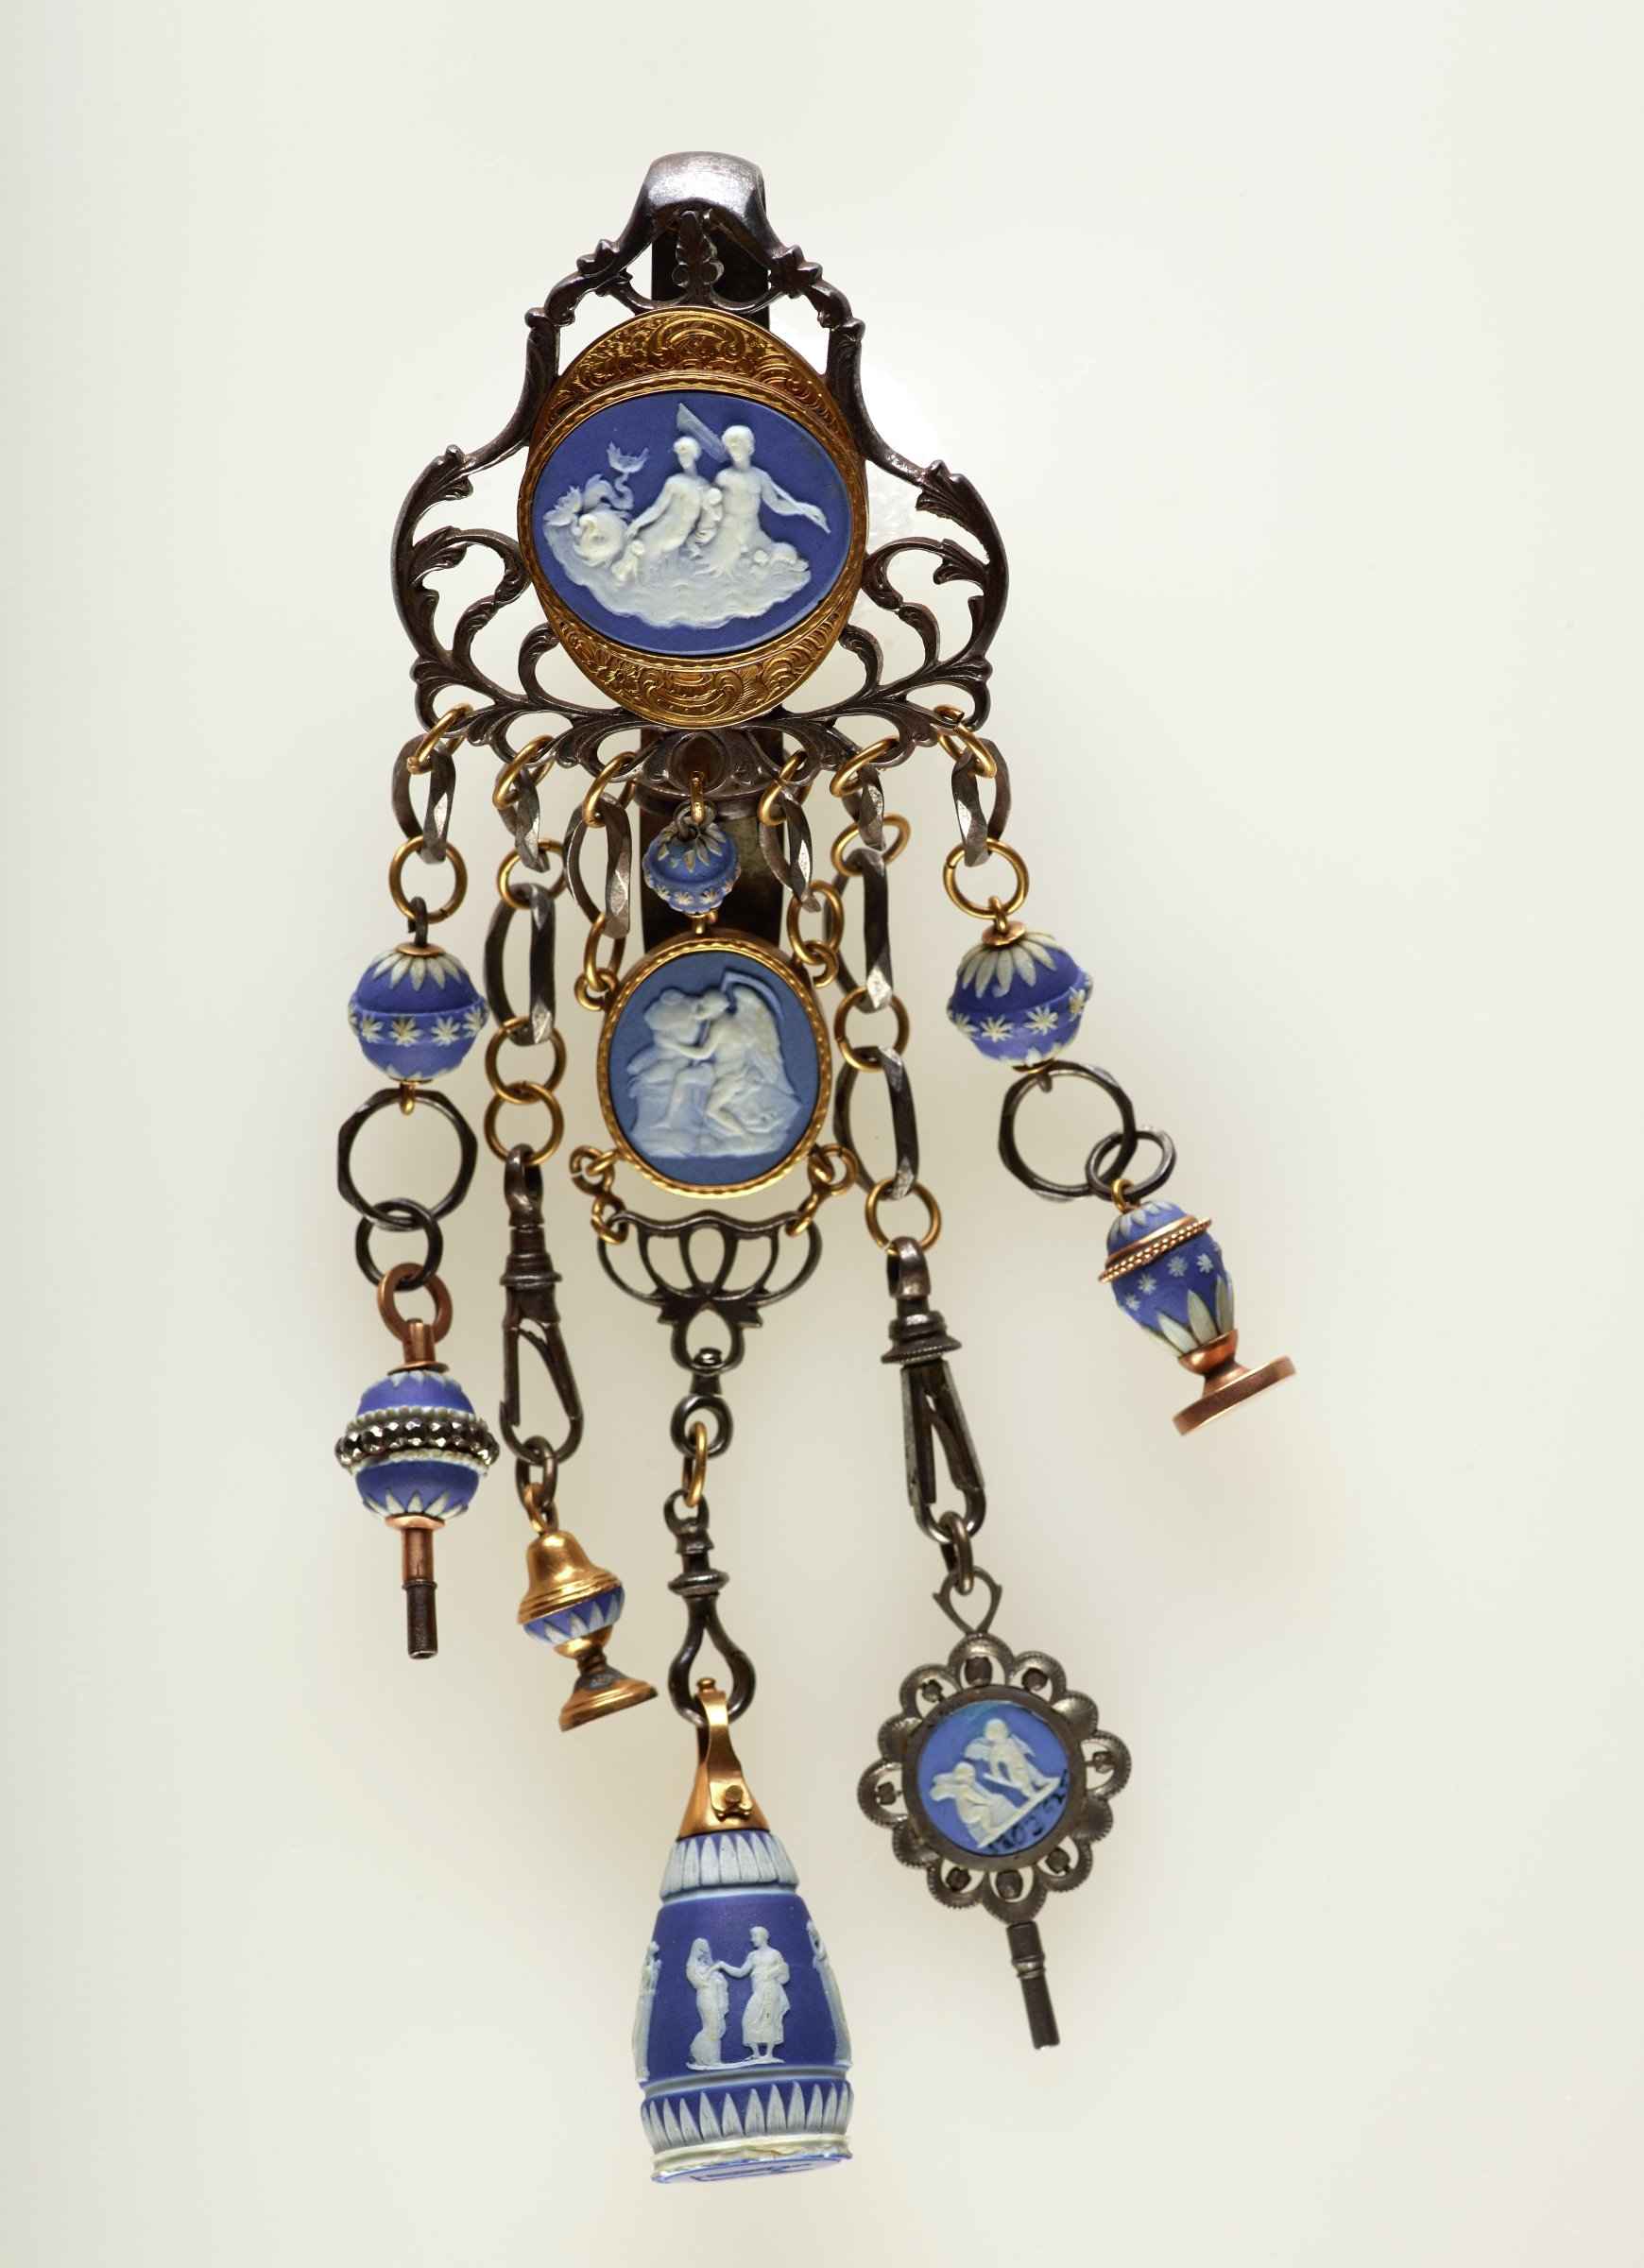 Chatelaine comprised of three blue and white jasper medallions and six beads mounted as pendants, watch keys, and seals, and a solid blue jasper seal with polished surface mounted in steel and gold with a hook on the back, the entire piece with five hanging elements suspended from a central element comprised of a jasper medallion with a scene of two figures riding a sea serpent set in an engraved gold mount, the first hanging element with two beads on a steel and gold chain, the lower bead with a band of cut steel diamonds functions as a watch key; the second element is a steel and gold chain with a hook from which hangs a jasper and gold seal (the plate is not engraved); the third element, the longest central element, includes a jasper bead on a steel chain above a jasper medallion of a seated figure with scythe, below this the sold blue jasper seal decorated with classical figures around, the plate likewise with two classical figures; the fourth hanging element comprised of a steel and gold chain from which hangs a two-sided blue and white jasper medallion set in a steel mount that functions as a watch key, the medallion with scenes of Psyche bound by Cupid, and two Cupids; the fifth and last hanging element consists of a similar chain with a jasper bead and a gold mounted jasper seal.